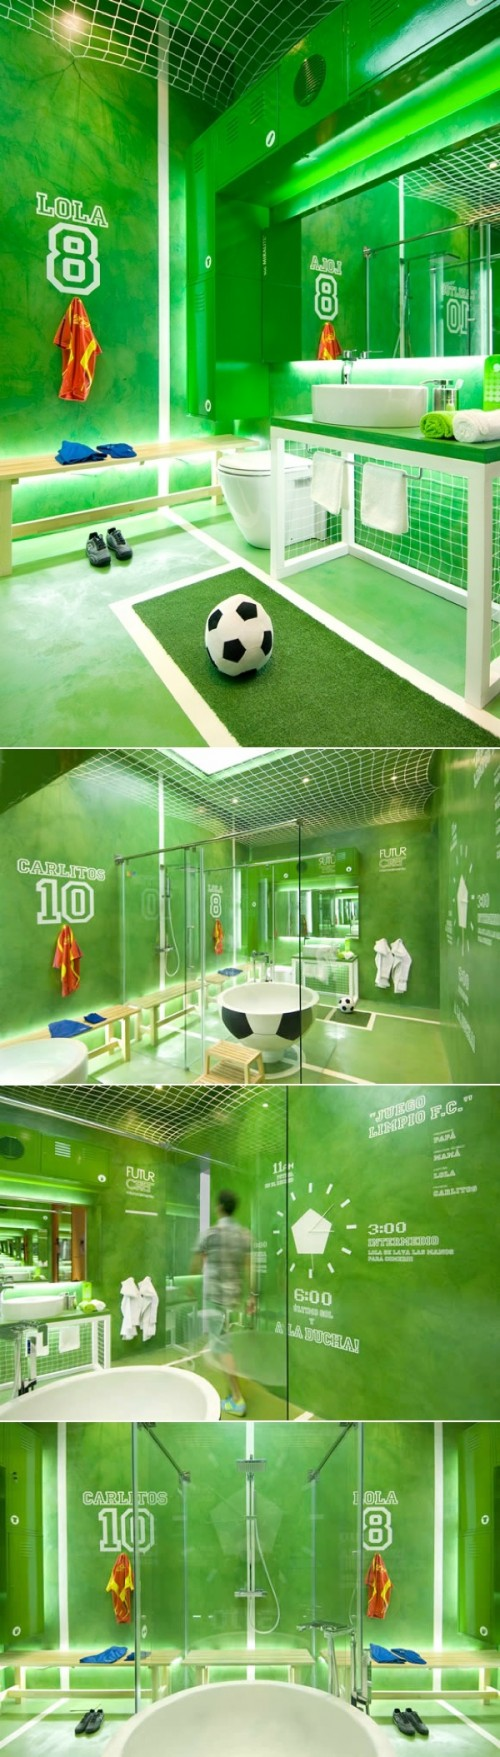 Soccer ball craft ideas - 10 Boys Soccer Room Ideas From Paint To Decor To Furniture